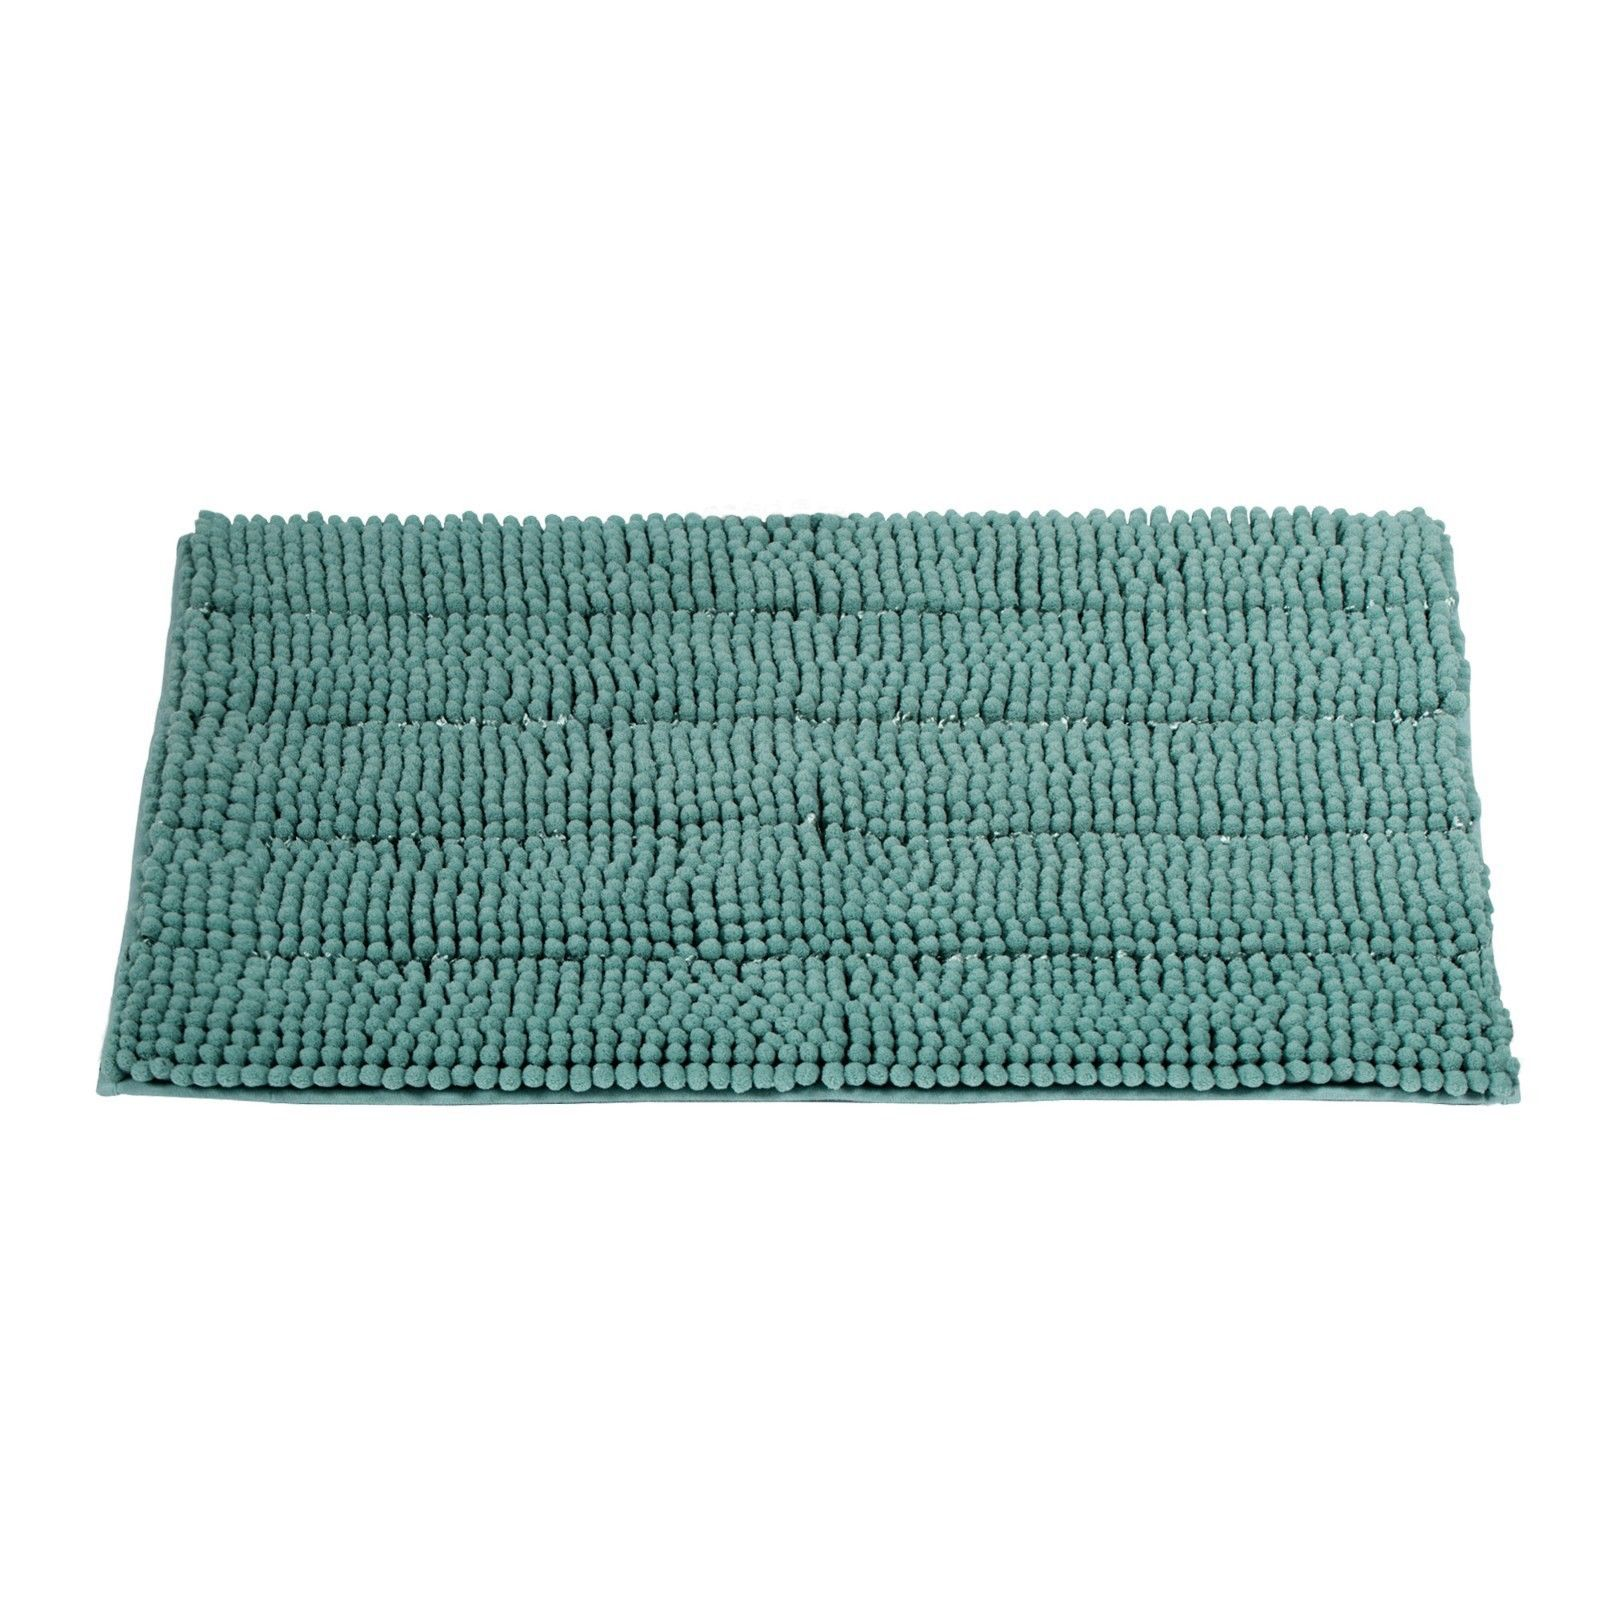 Non-Slip Bathroom Rugs Chenille Microfiber Floor Shower Mat Fast Water Absorbent